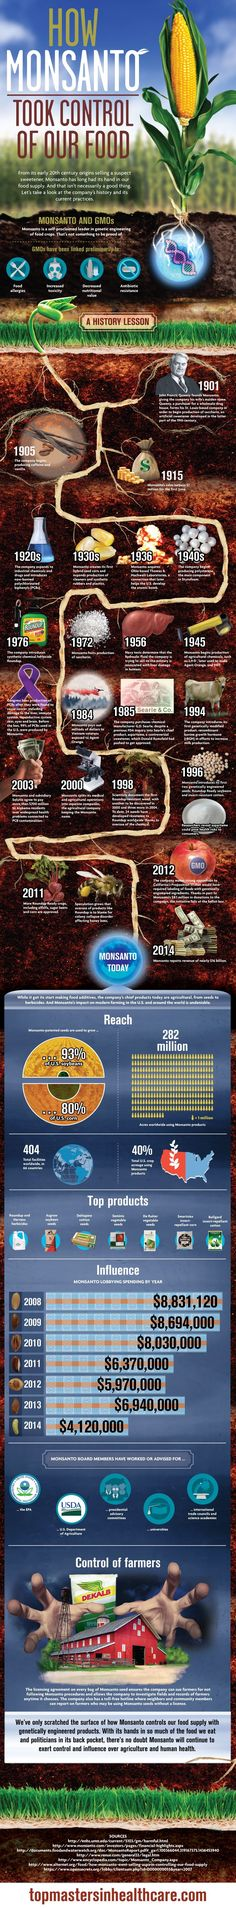 How Monsanto Took Over Our Food http://www.ebay.com/itm/ORMUS-Brain-Energy-Nootropics-/221956965986?